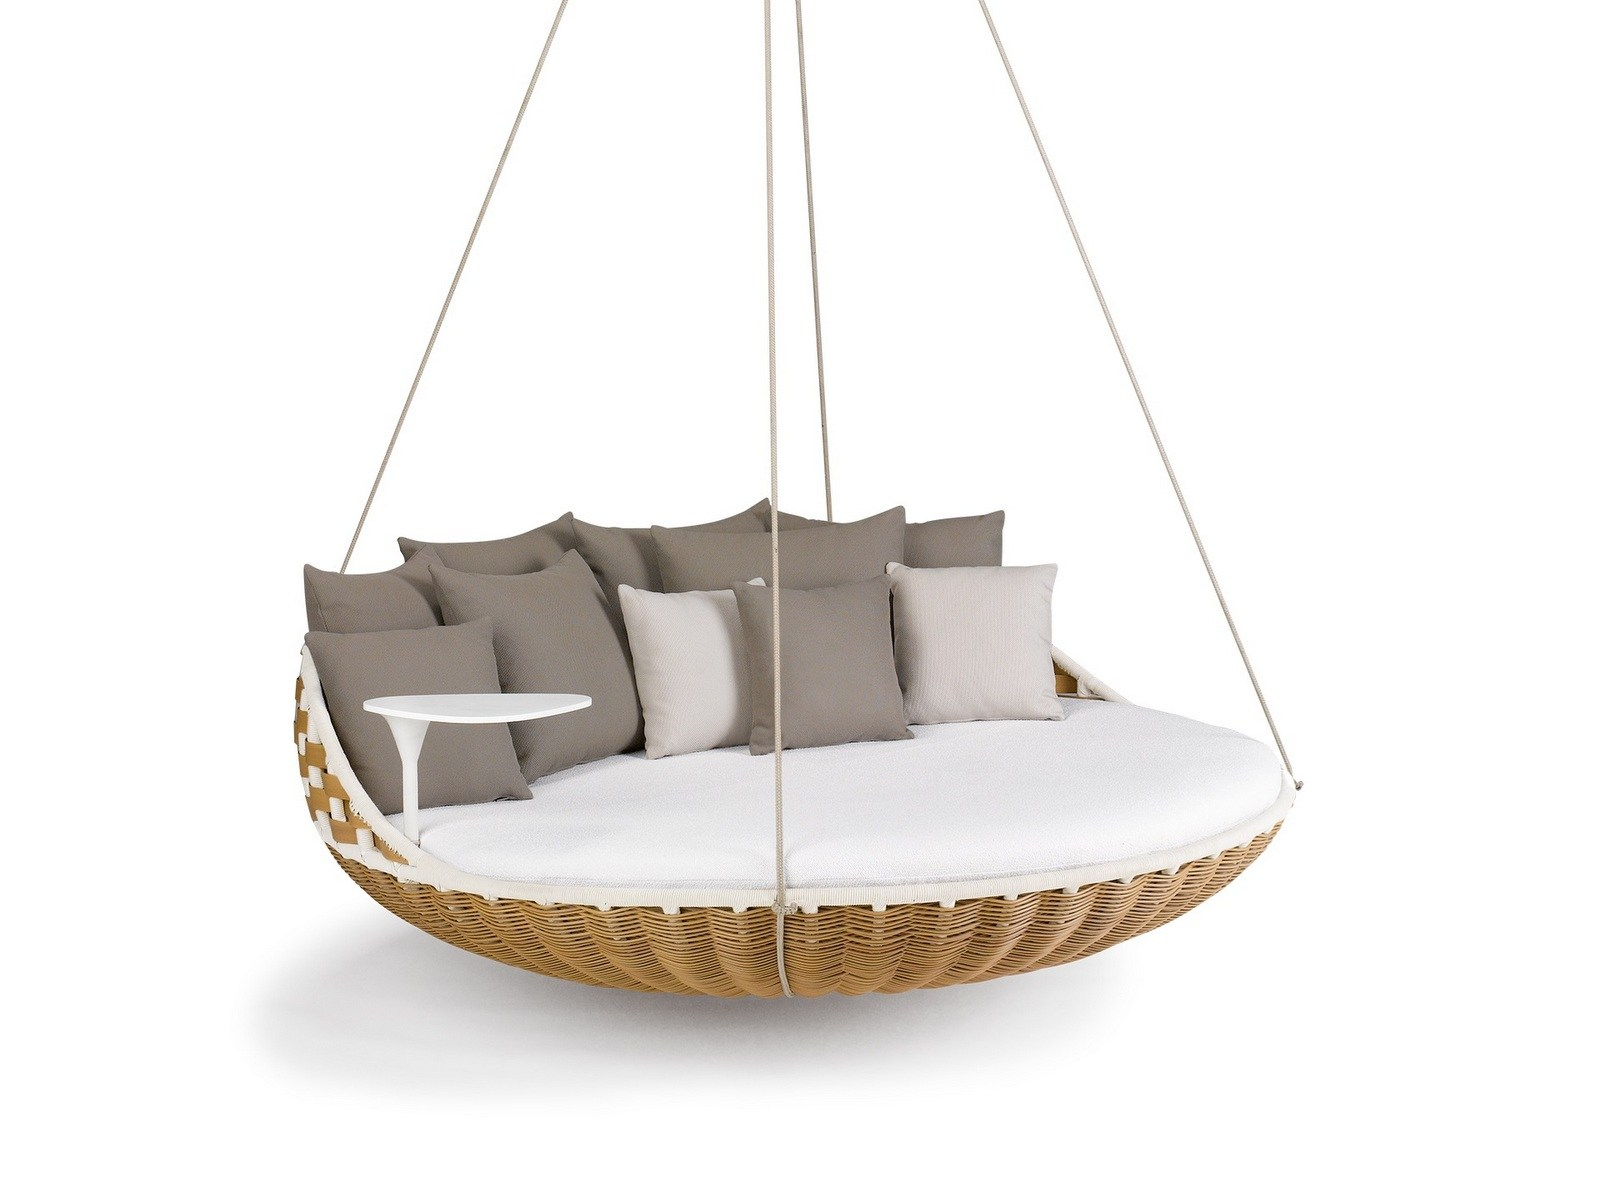 SWINGREST | 2 Seater Garden Hanging Chair By Dedon Design Daniel Pouzet Design